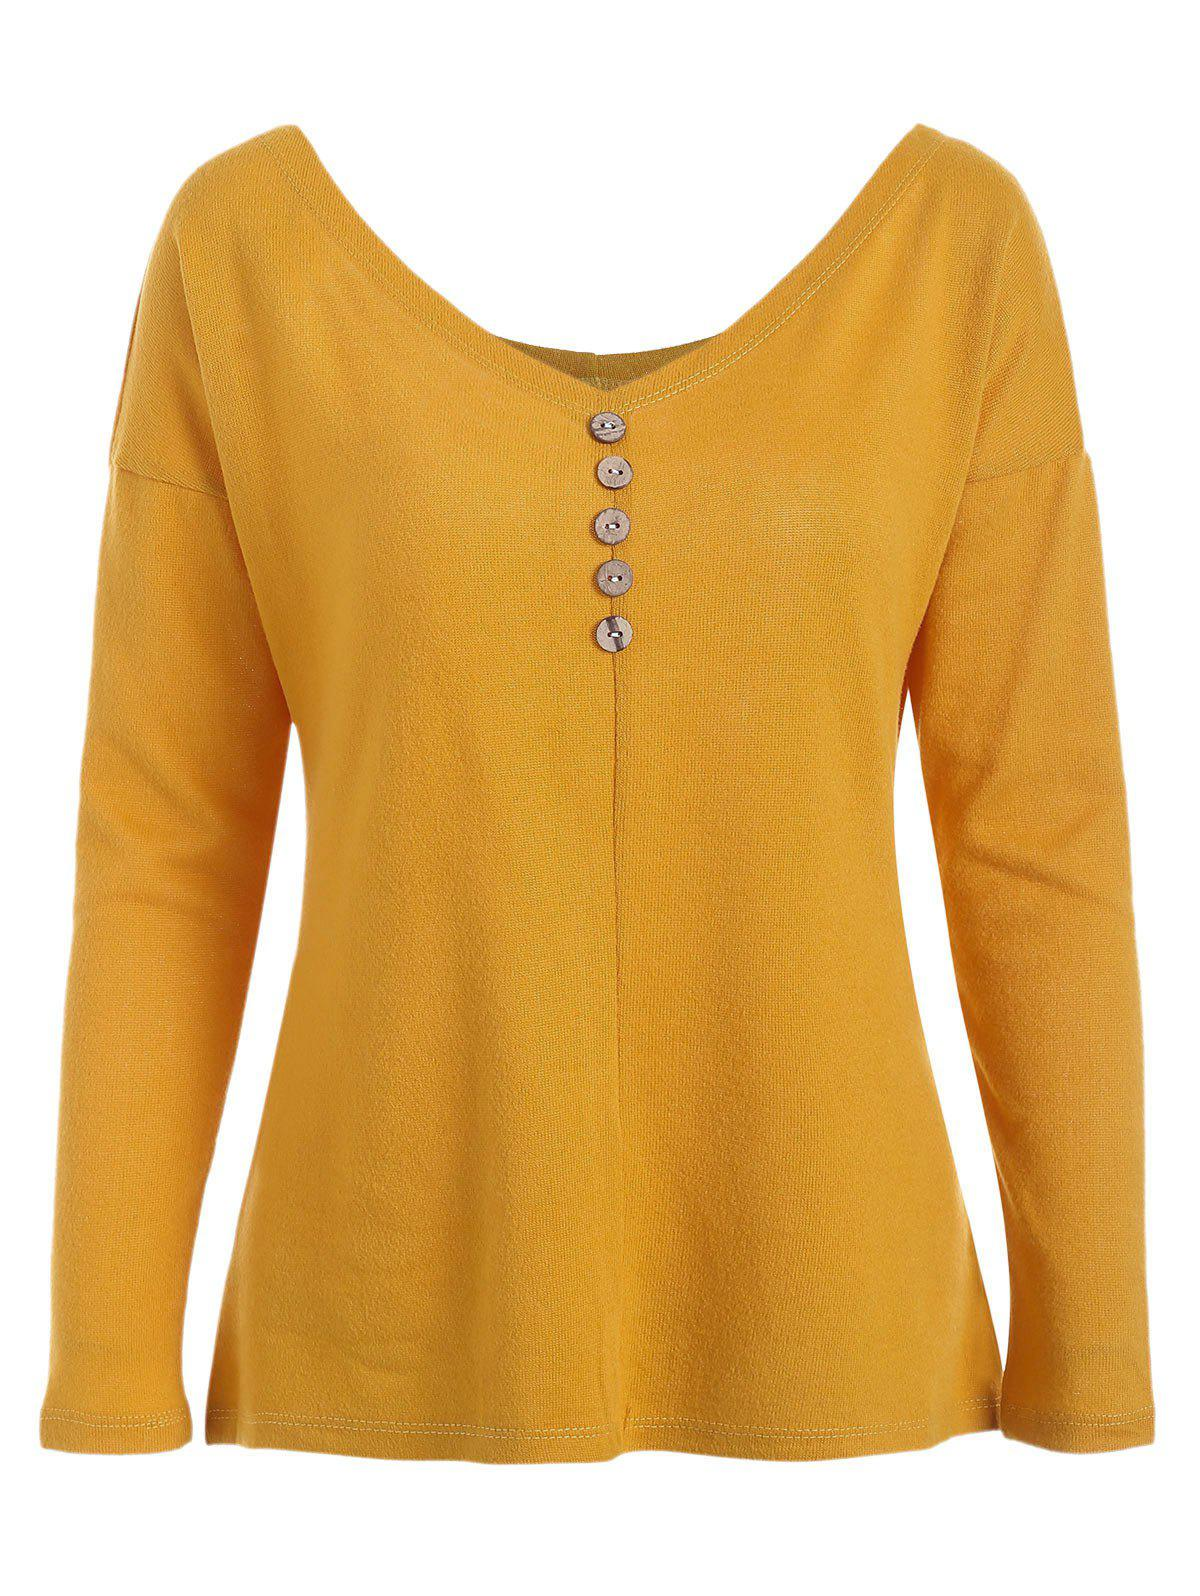 Latest Buttoned Long Sleeve Knit Tee